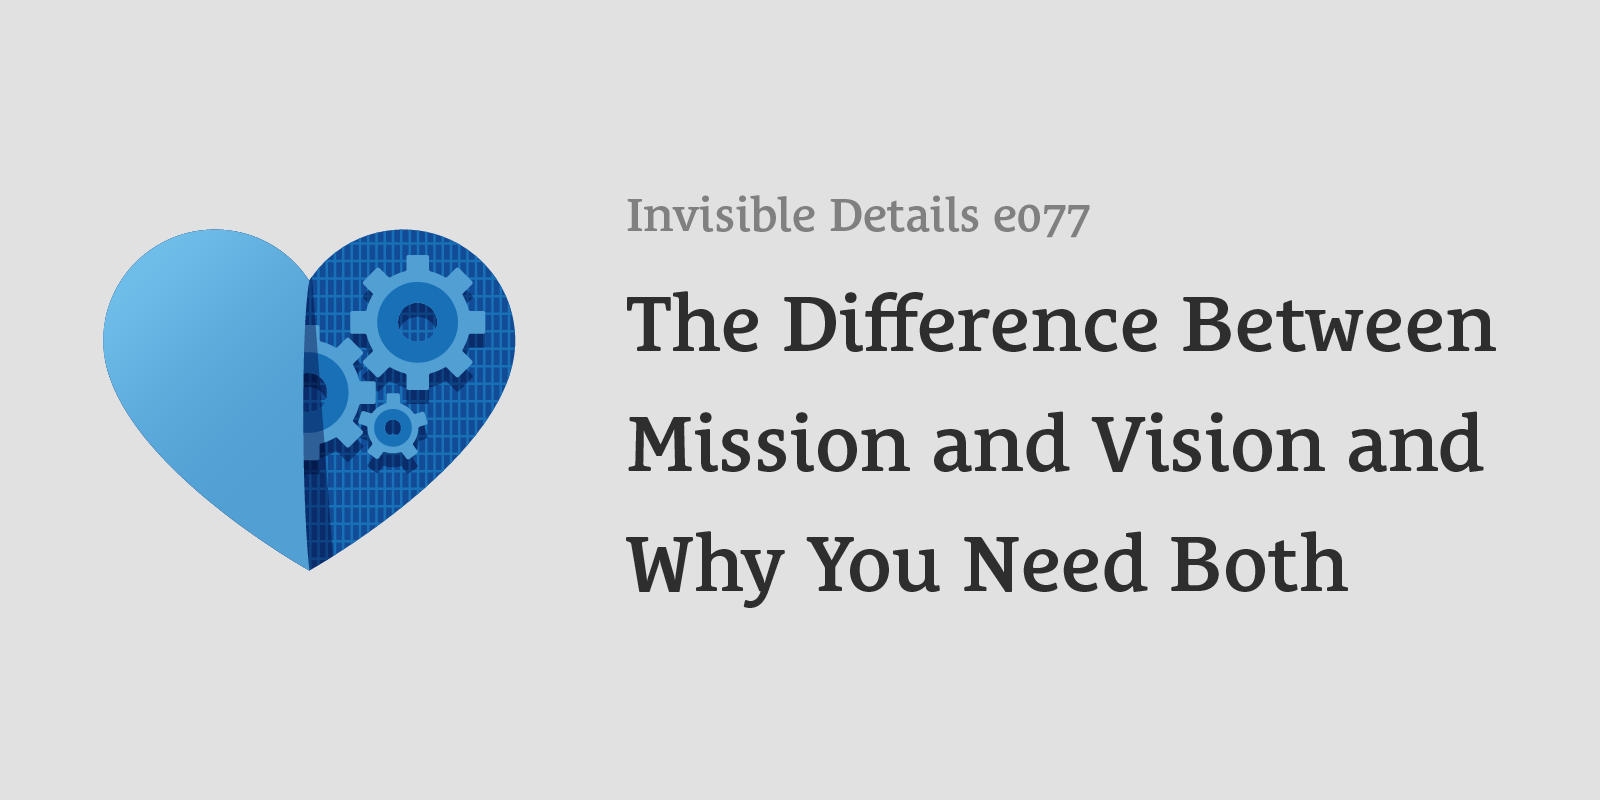 The Difference Between Mission and Vision and Why You Need Both